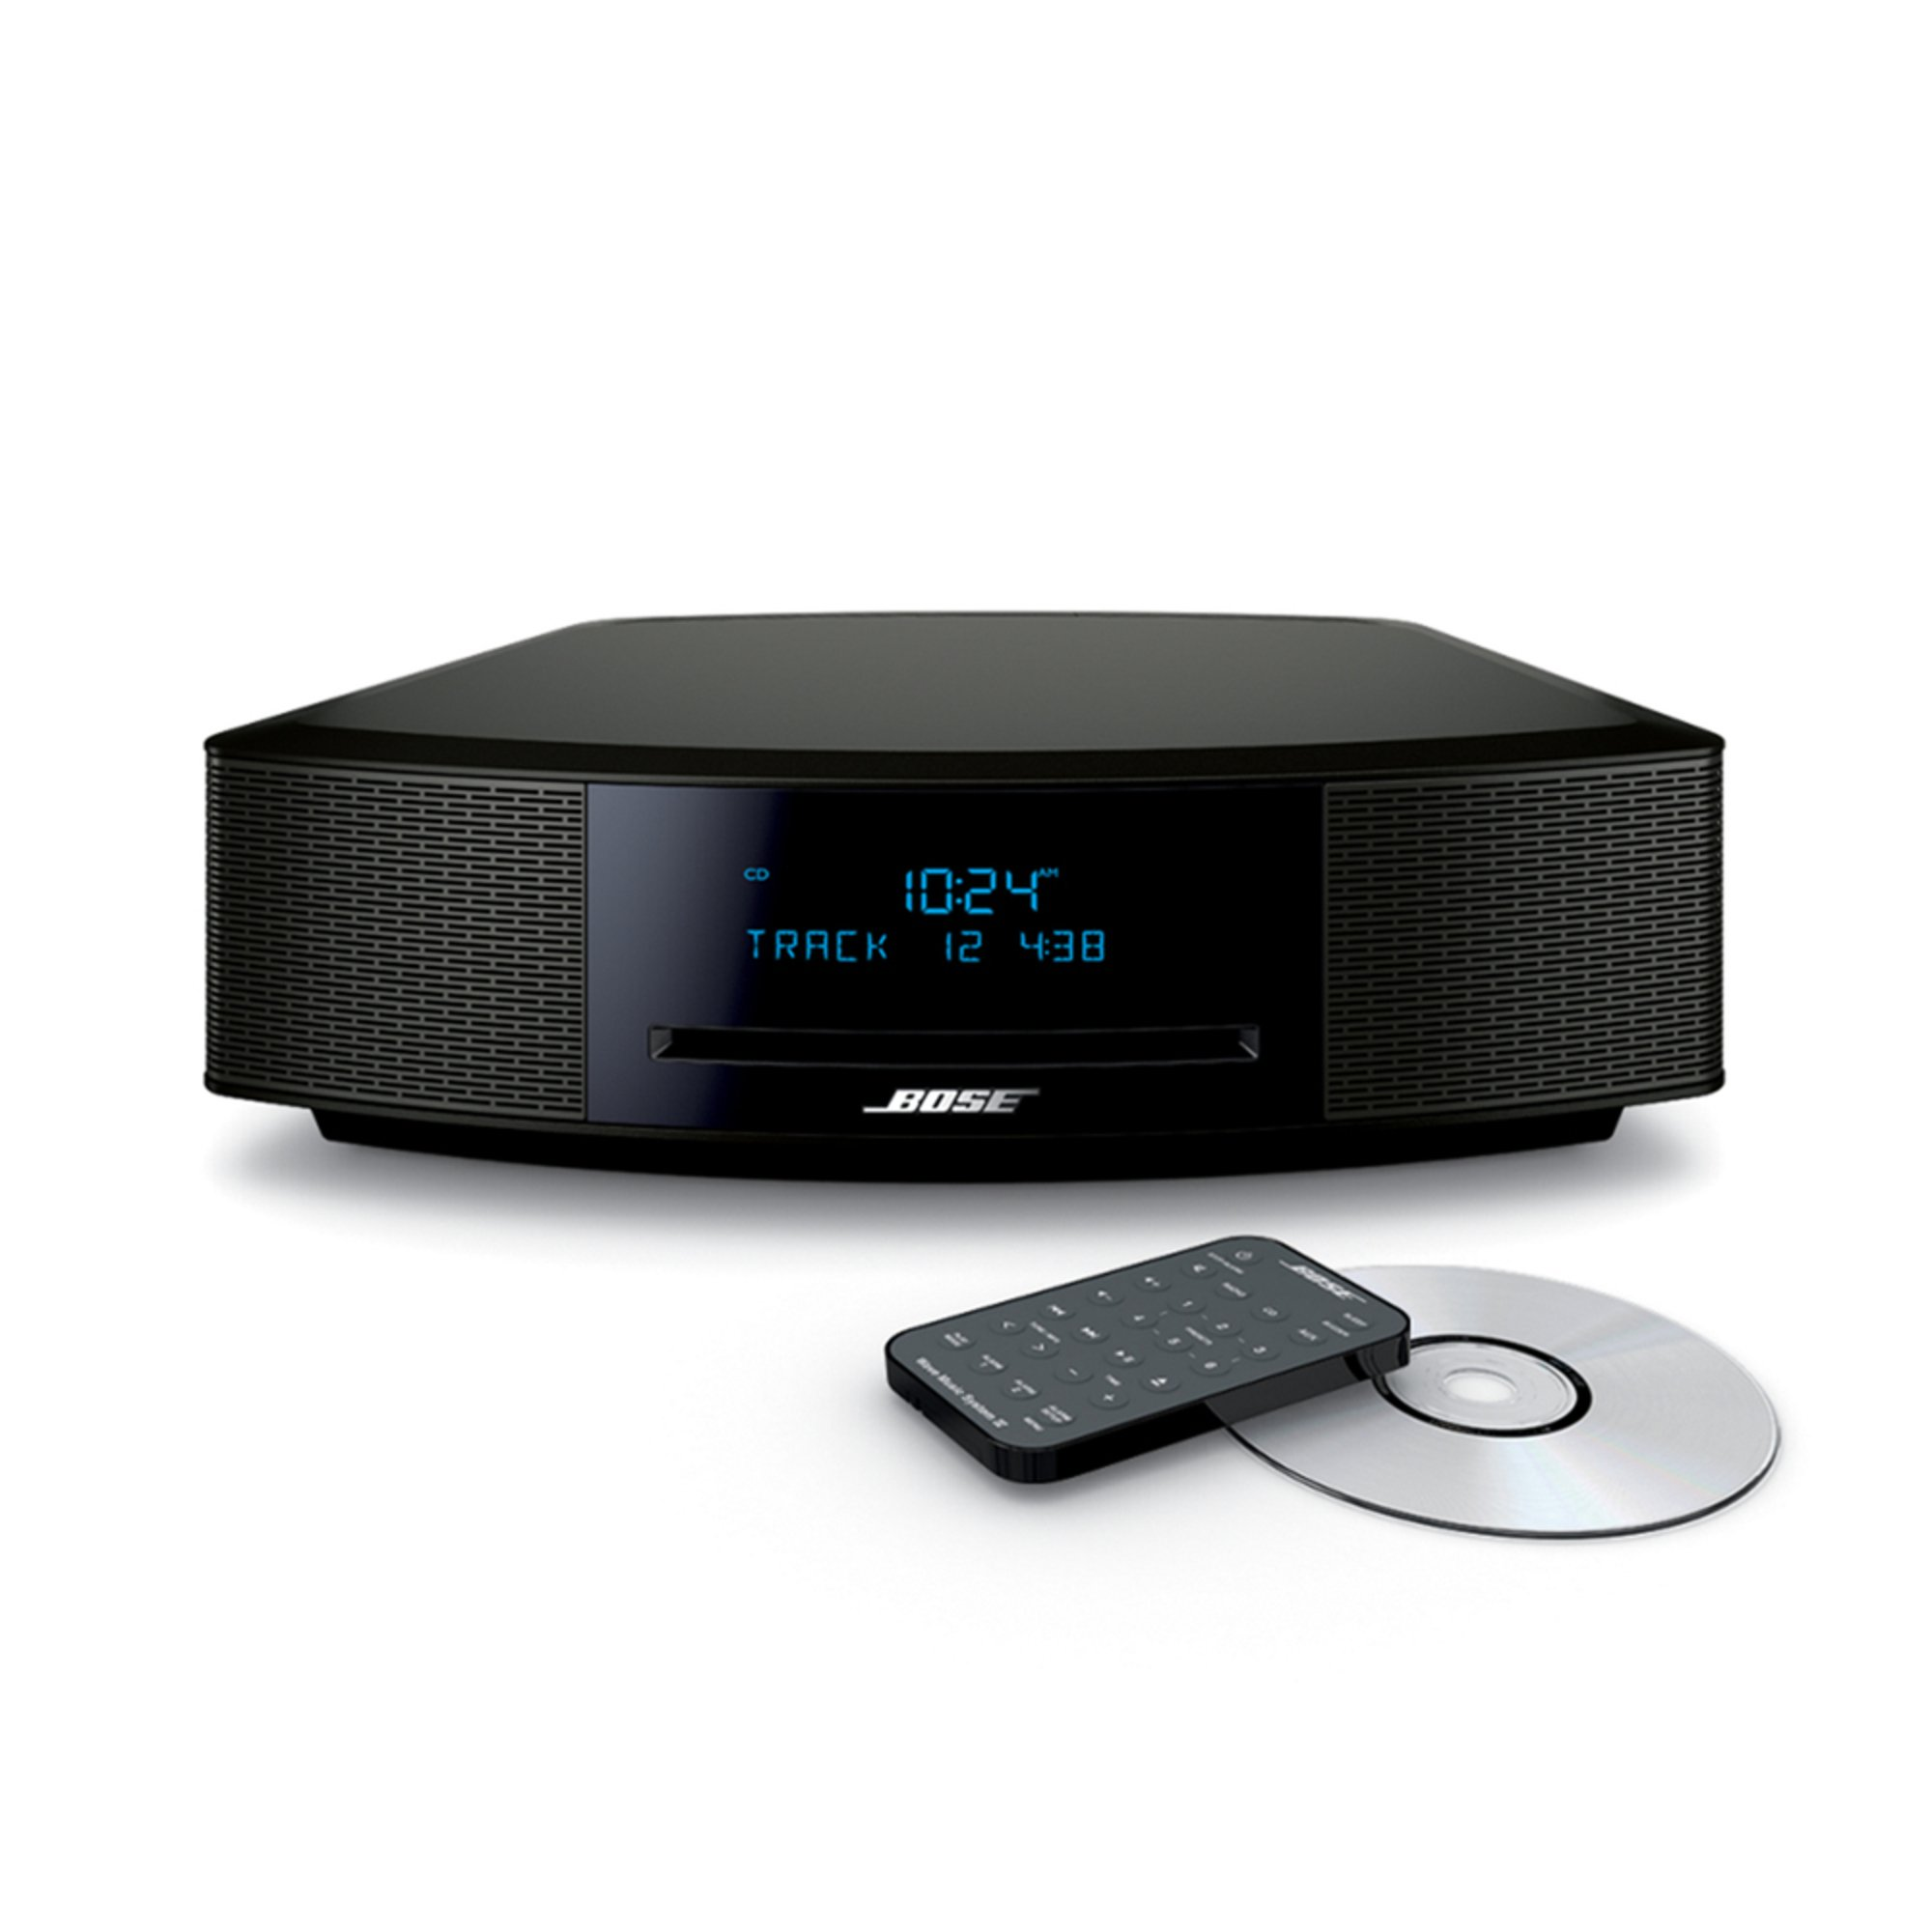 bose wave music system iv black audio electronics shop your navy exchange official site. Black Bedroom Furniture Sets. Home Design Ideas